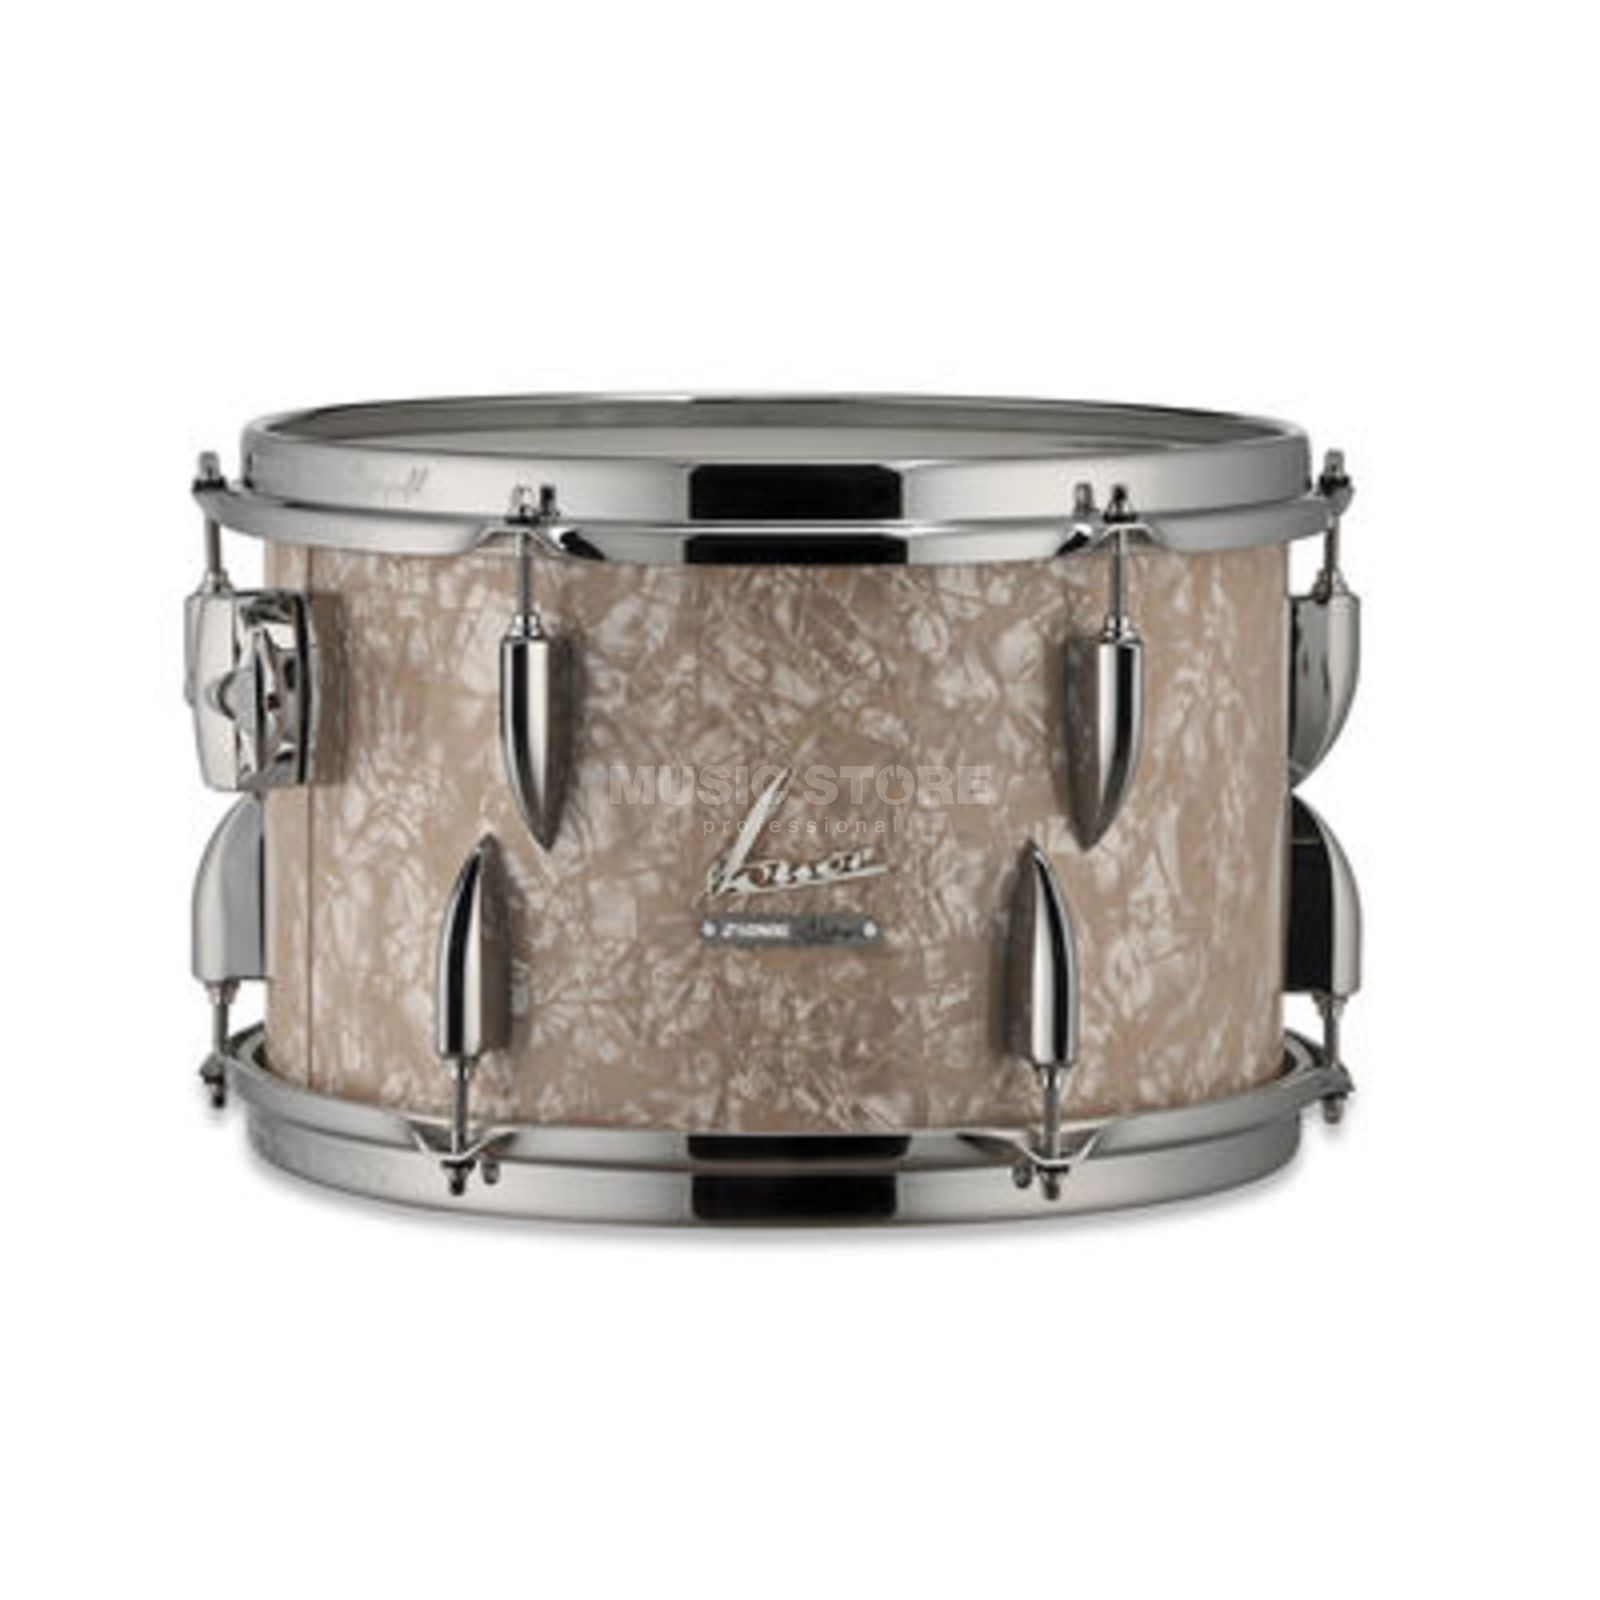 "Sonor Vintage Series Tom 10""x8"", Vintage Pearl Product Image"